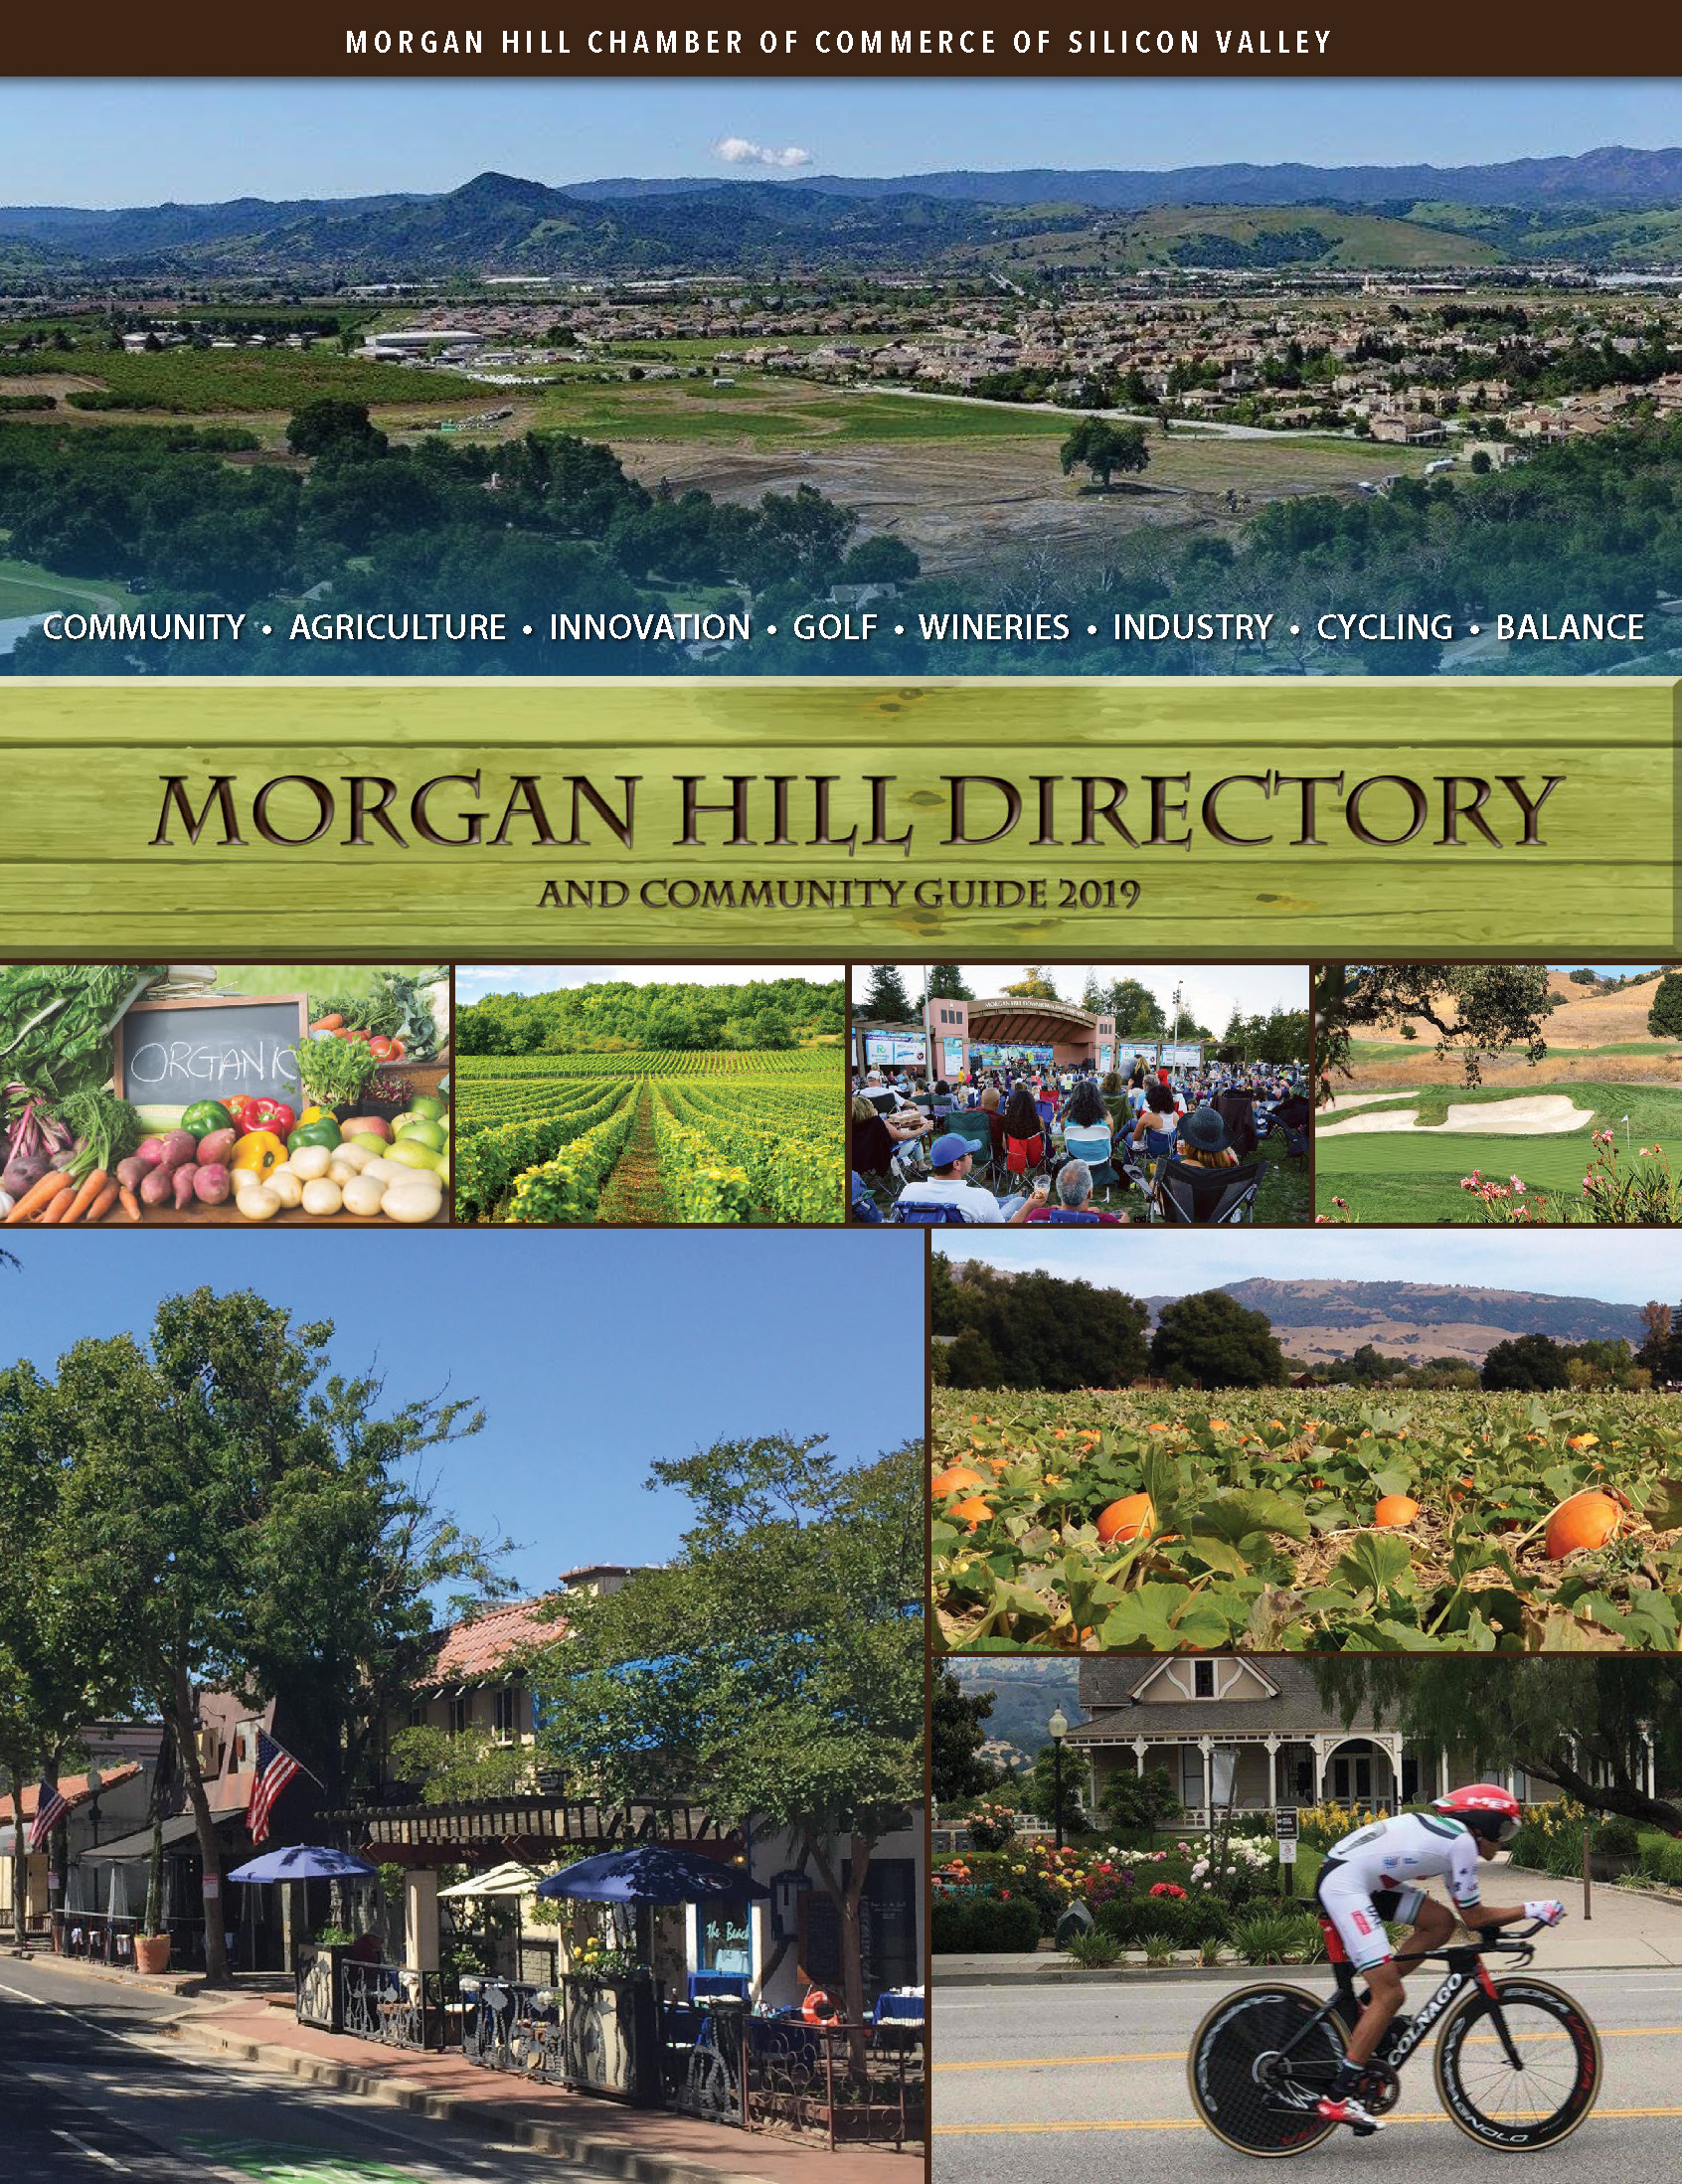 Morgan Hill Business Directory and Community Guide